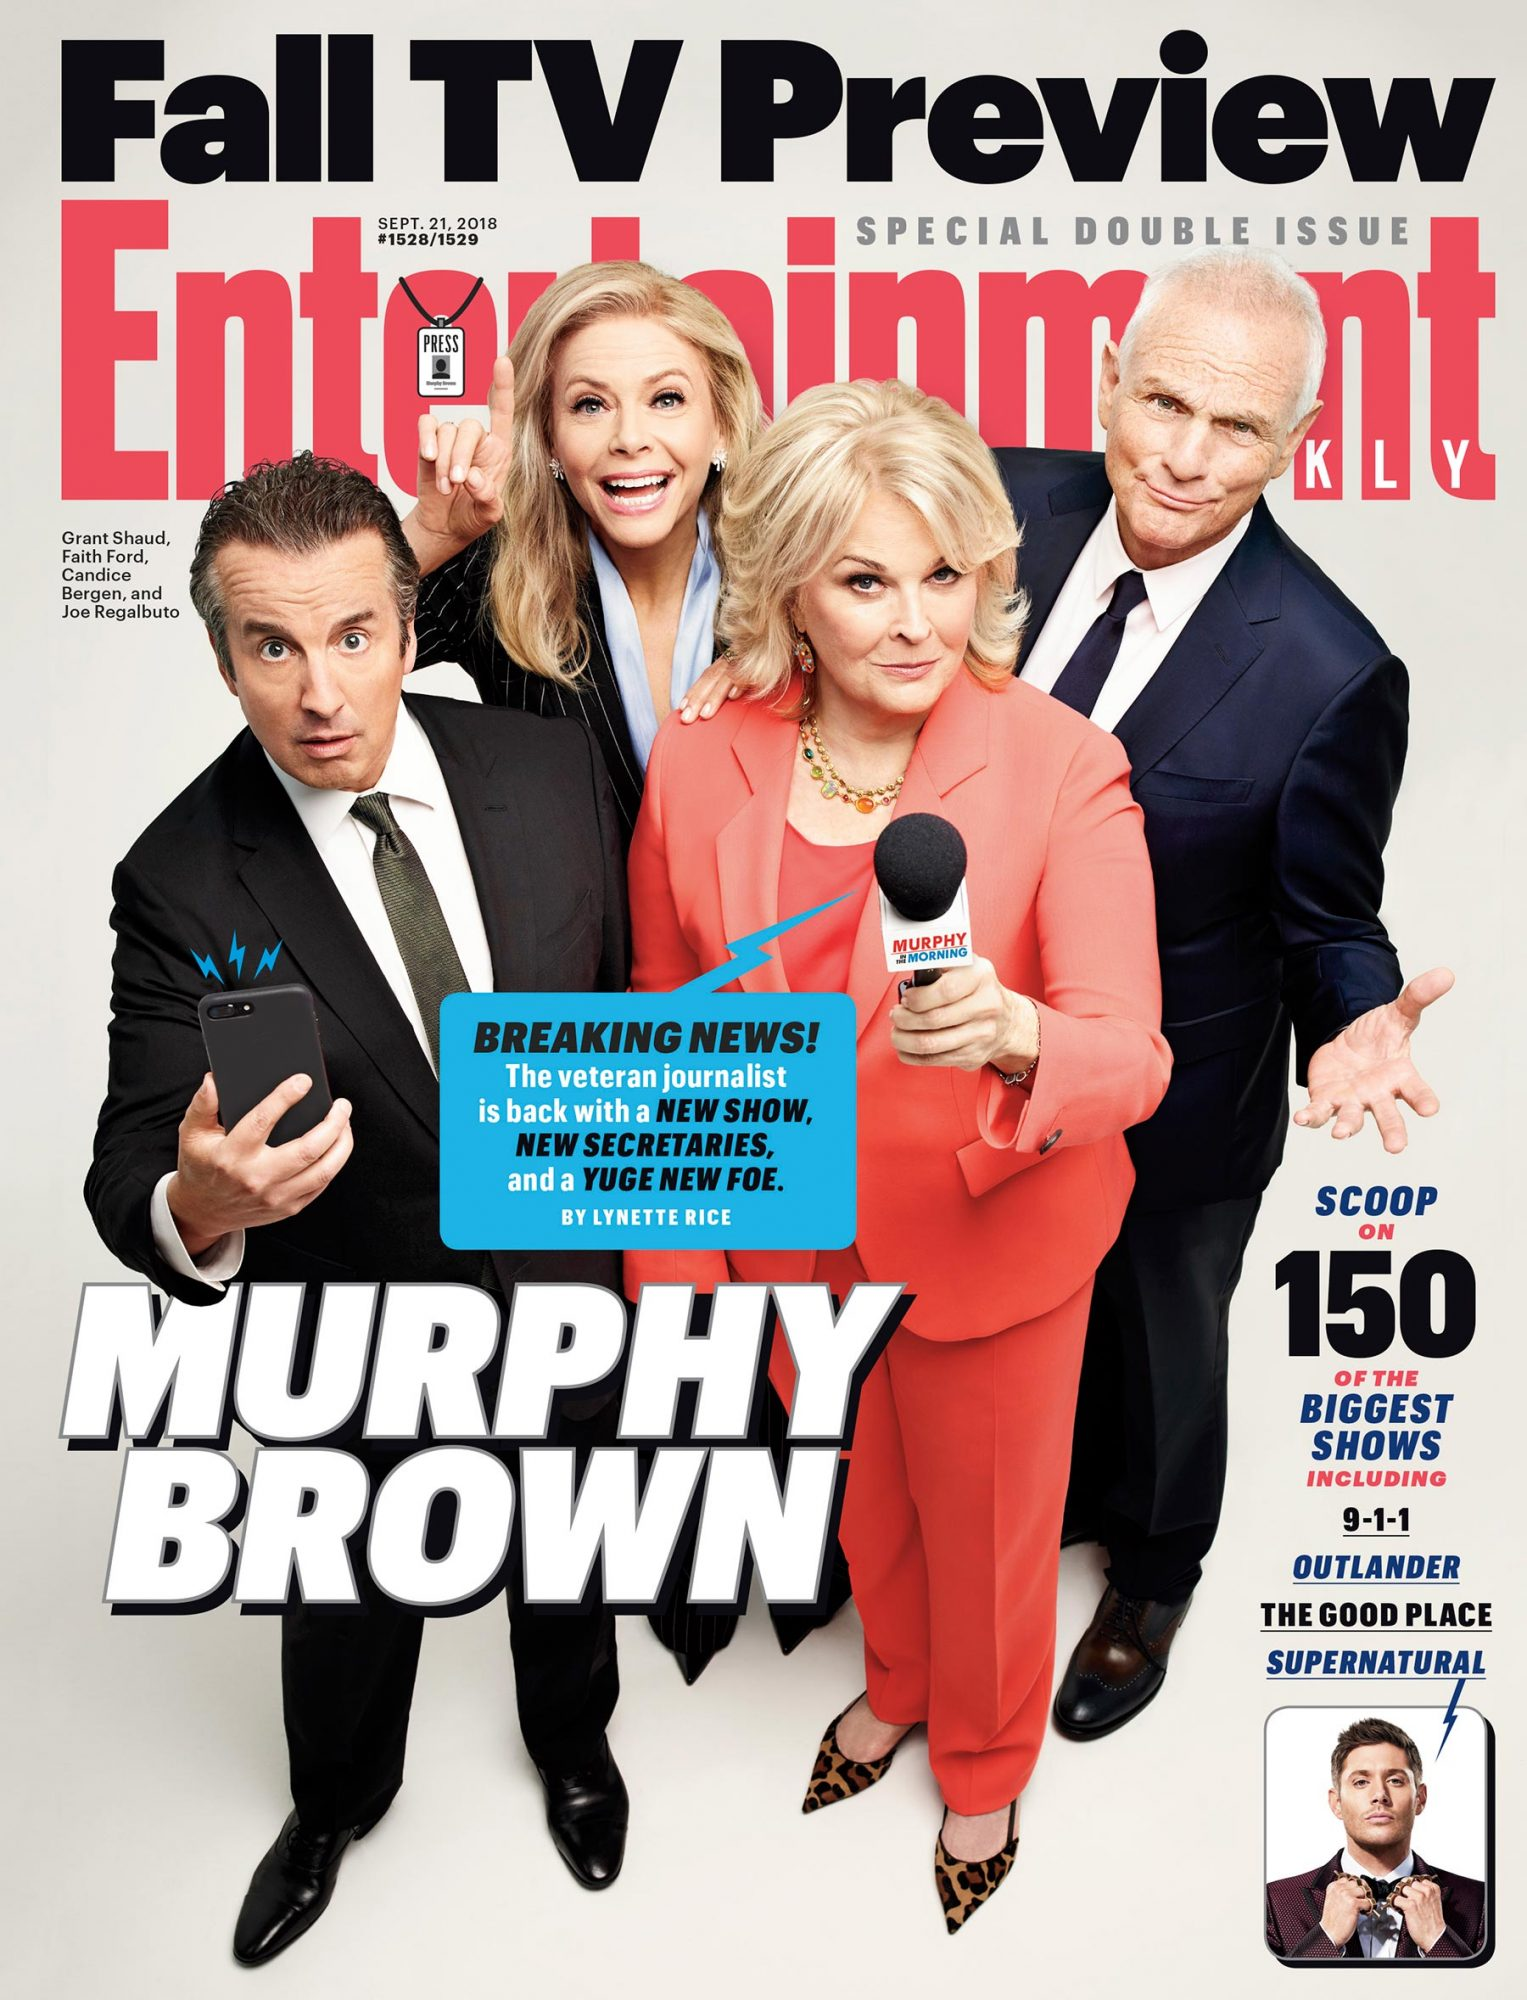 The return of Murphy Brown